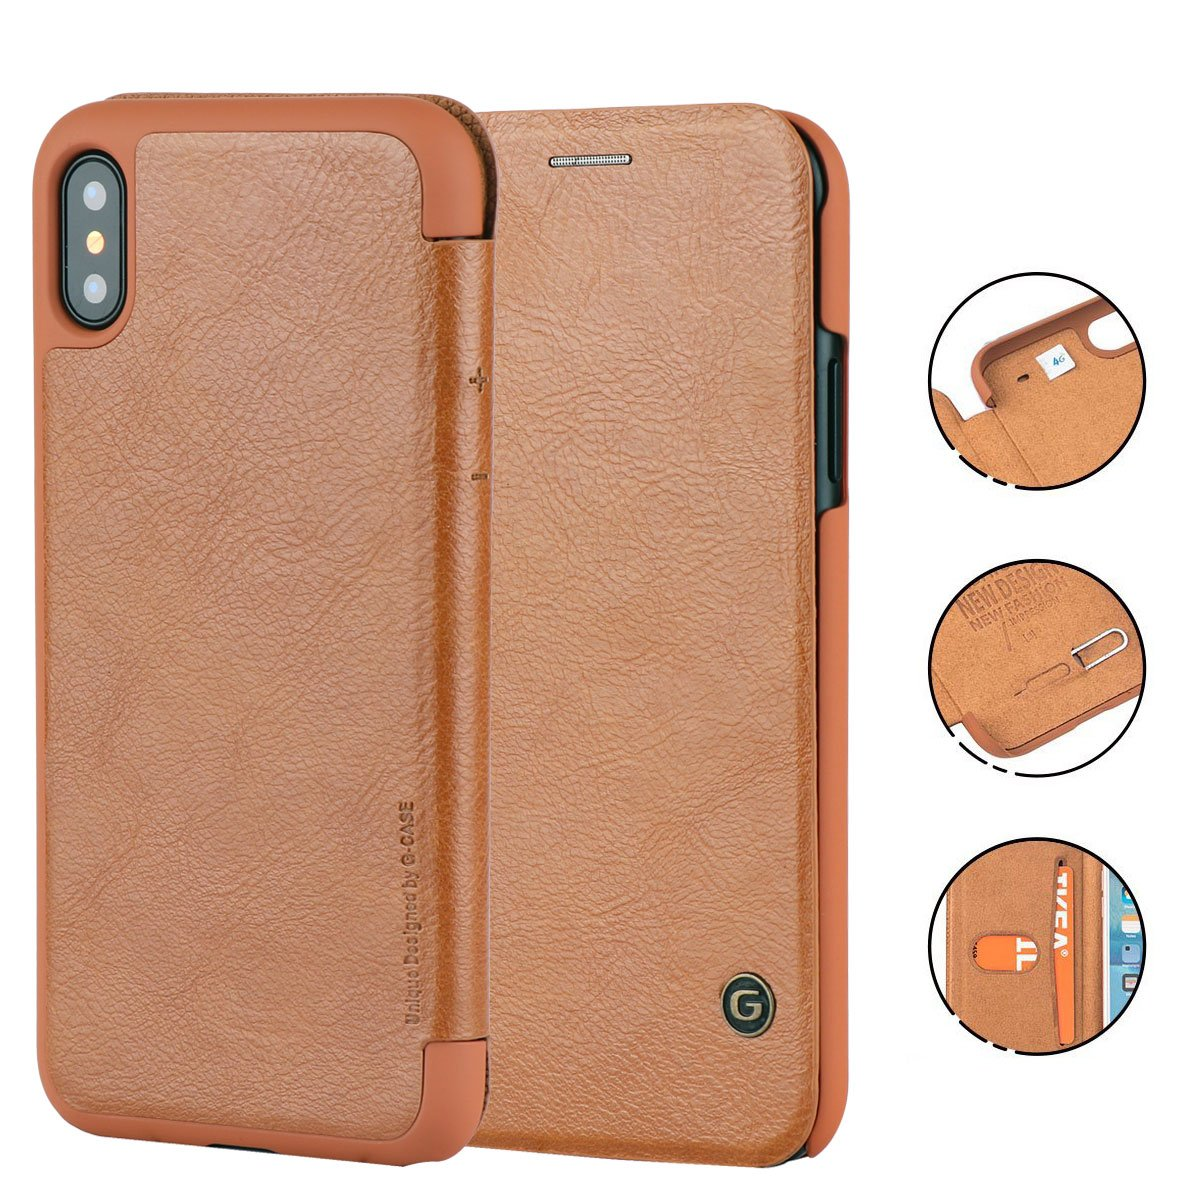 iPhone X Case, G-CASE [Business] Ultra Slim Folio Flip Leather Wallet Case 360 Degree Full Body Protection Case With Card Slot for ID/Card/Cash for Apple iPhone X (Khaki)